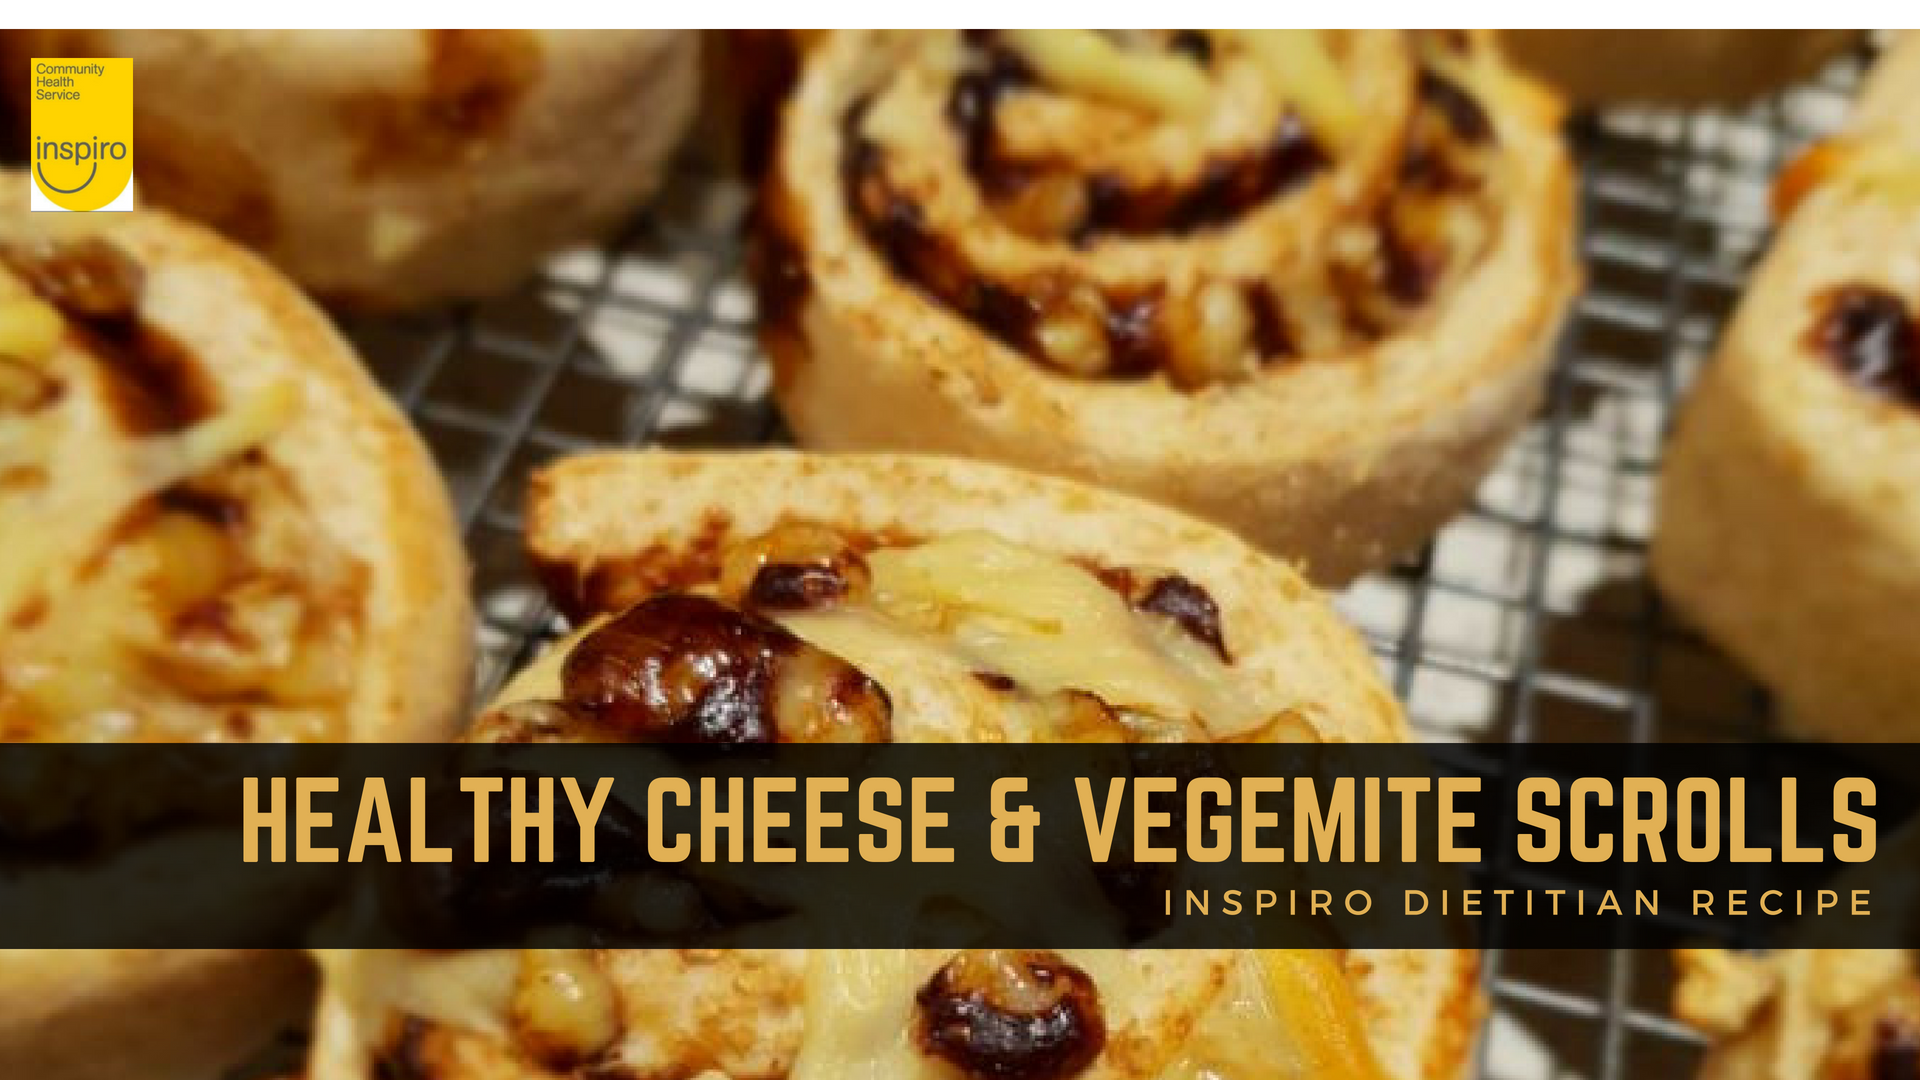 Homemade wholemeal cheesy Vegemite scrolls